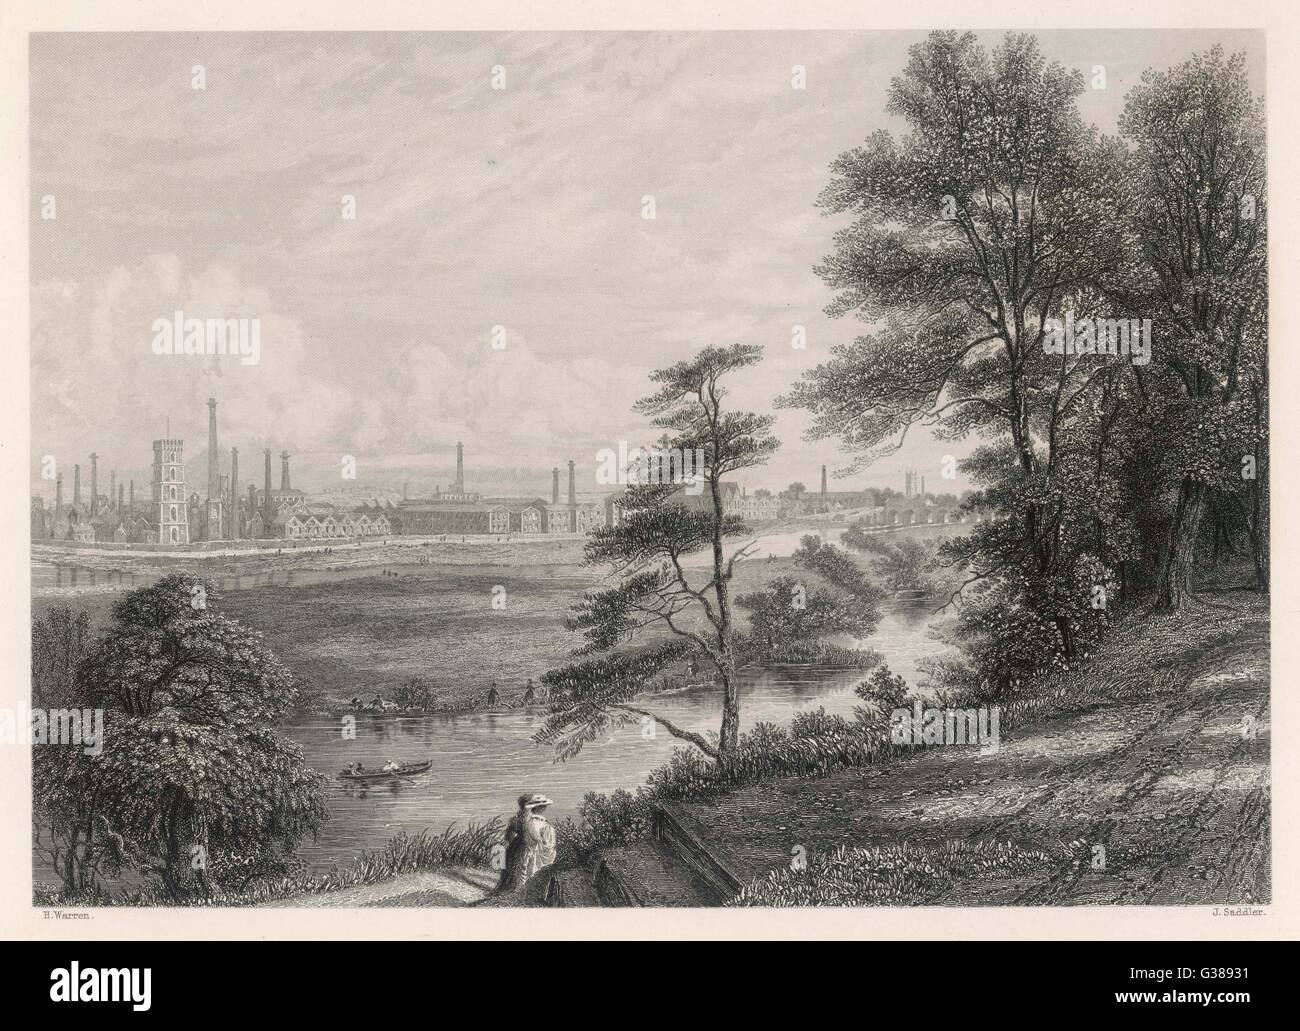 The industrial landscape at Burton on Trent.         Date: Circa 1840 Stock Photo